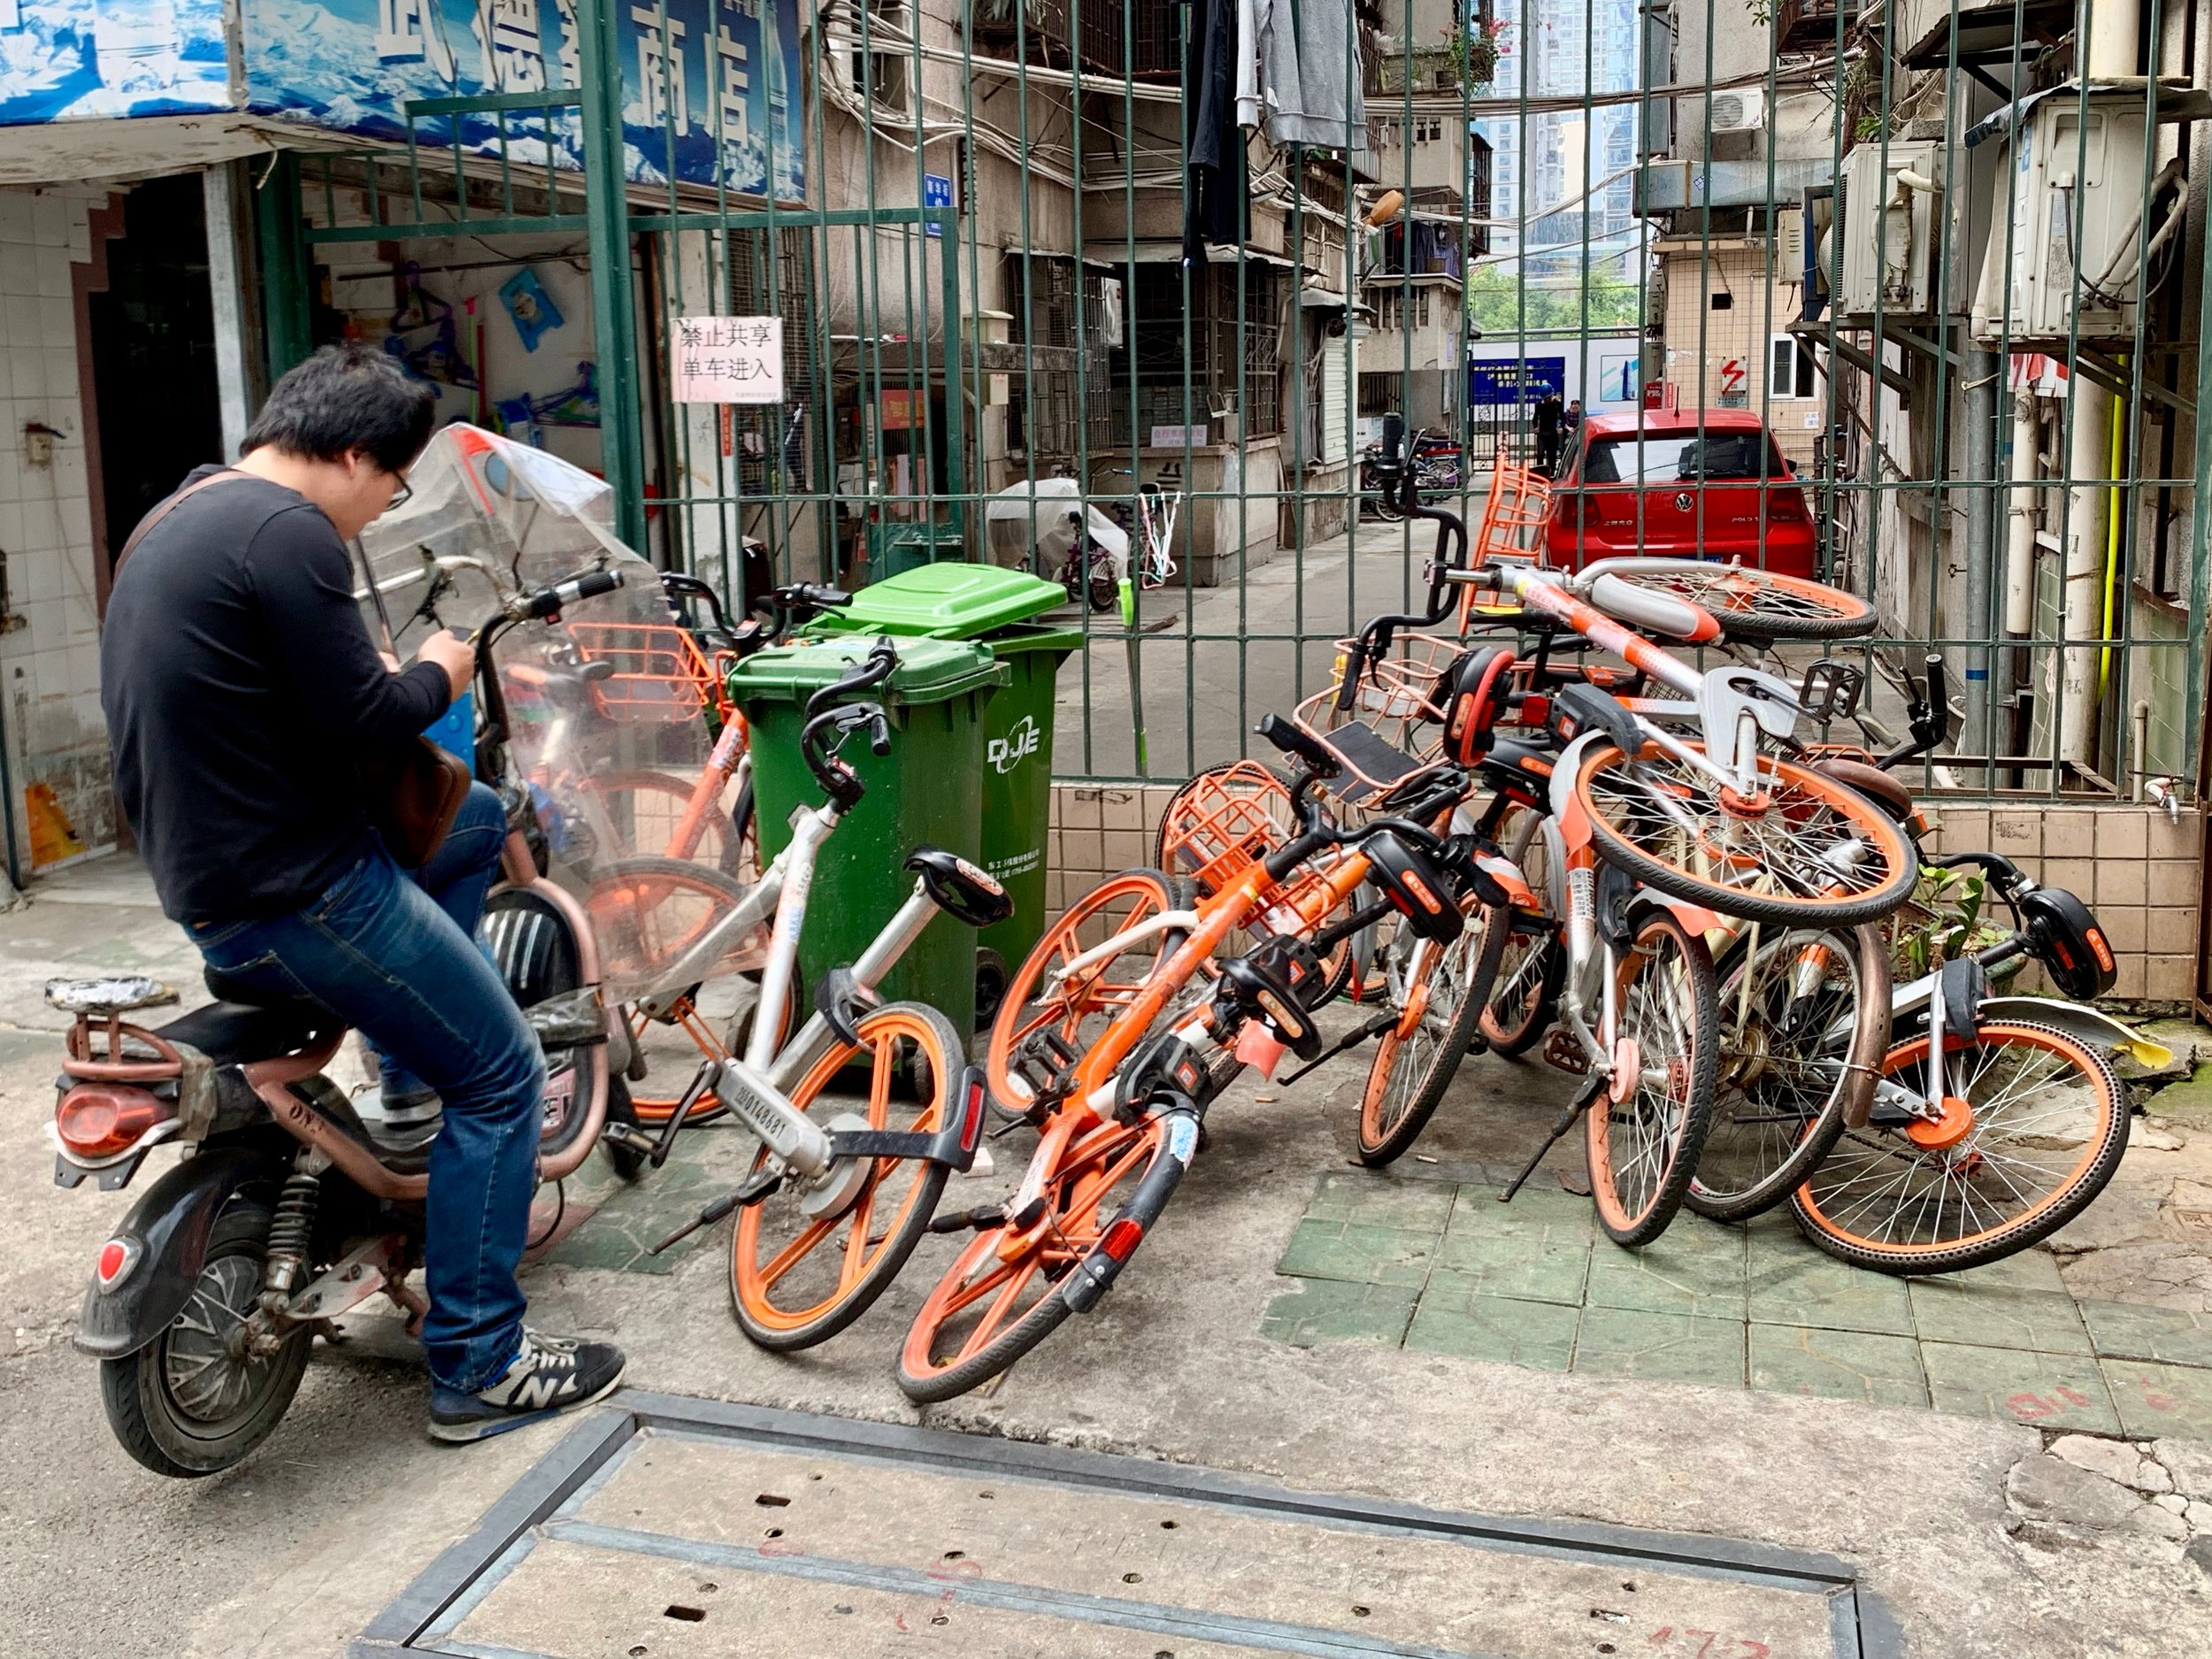 Mobikes in downtown Shenzhen, China. Photo: (C) Remko Tanis